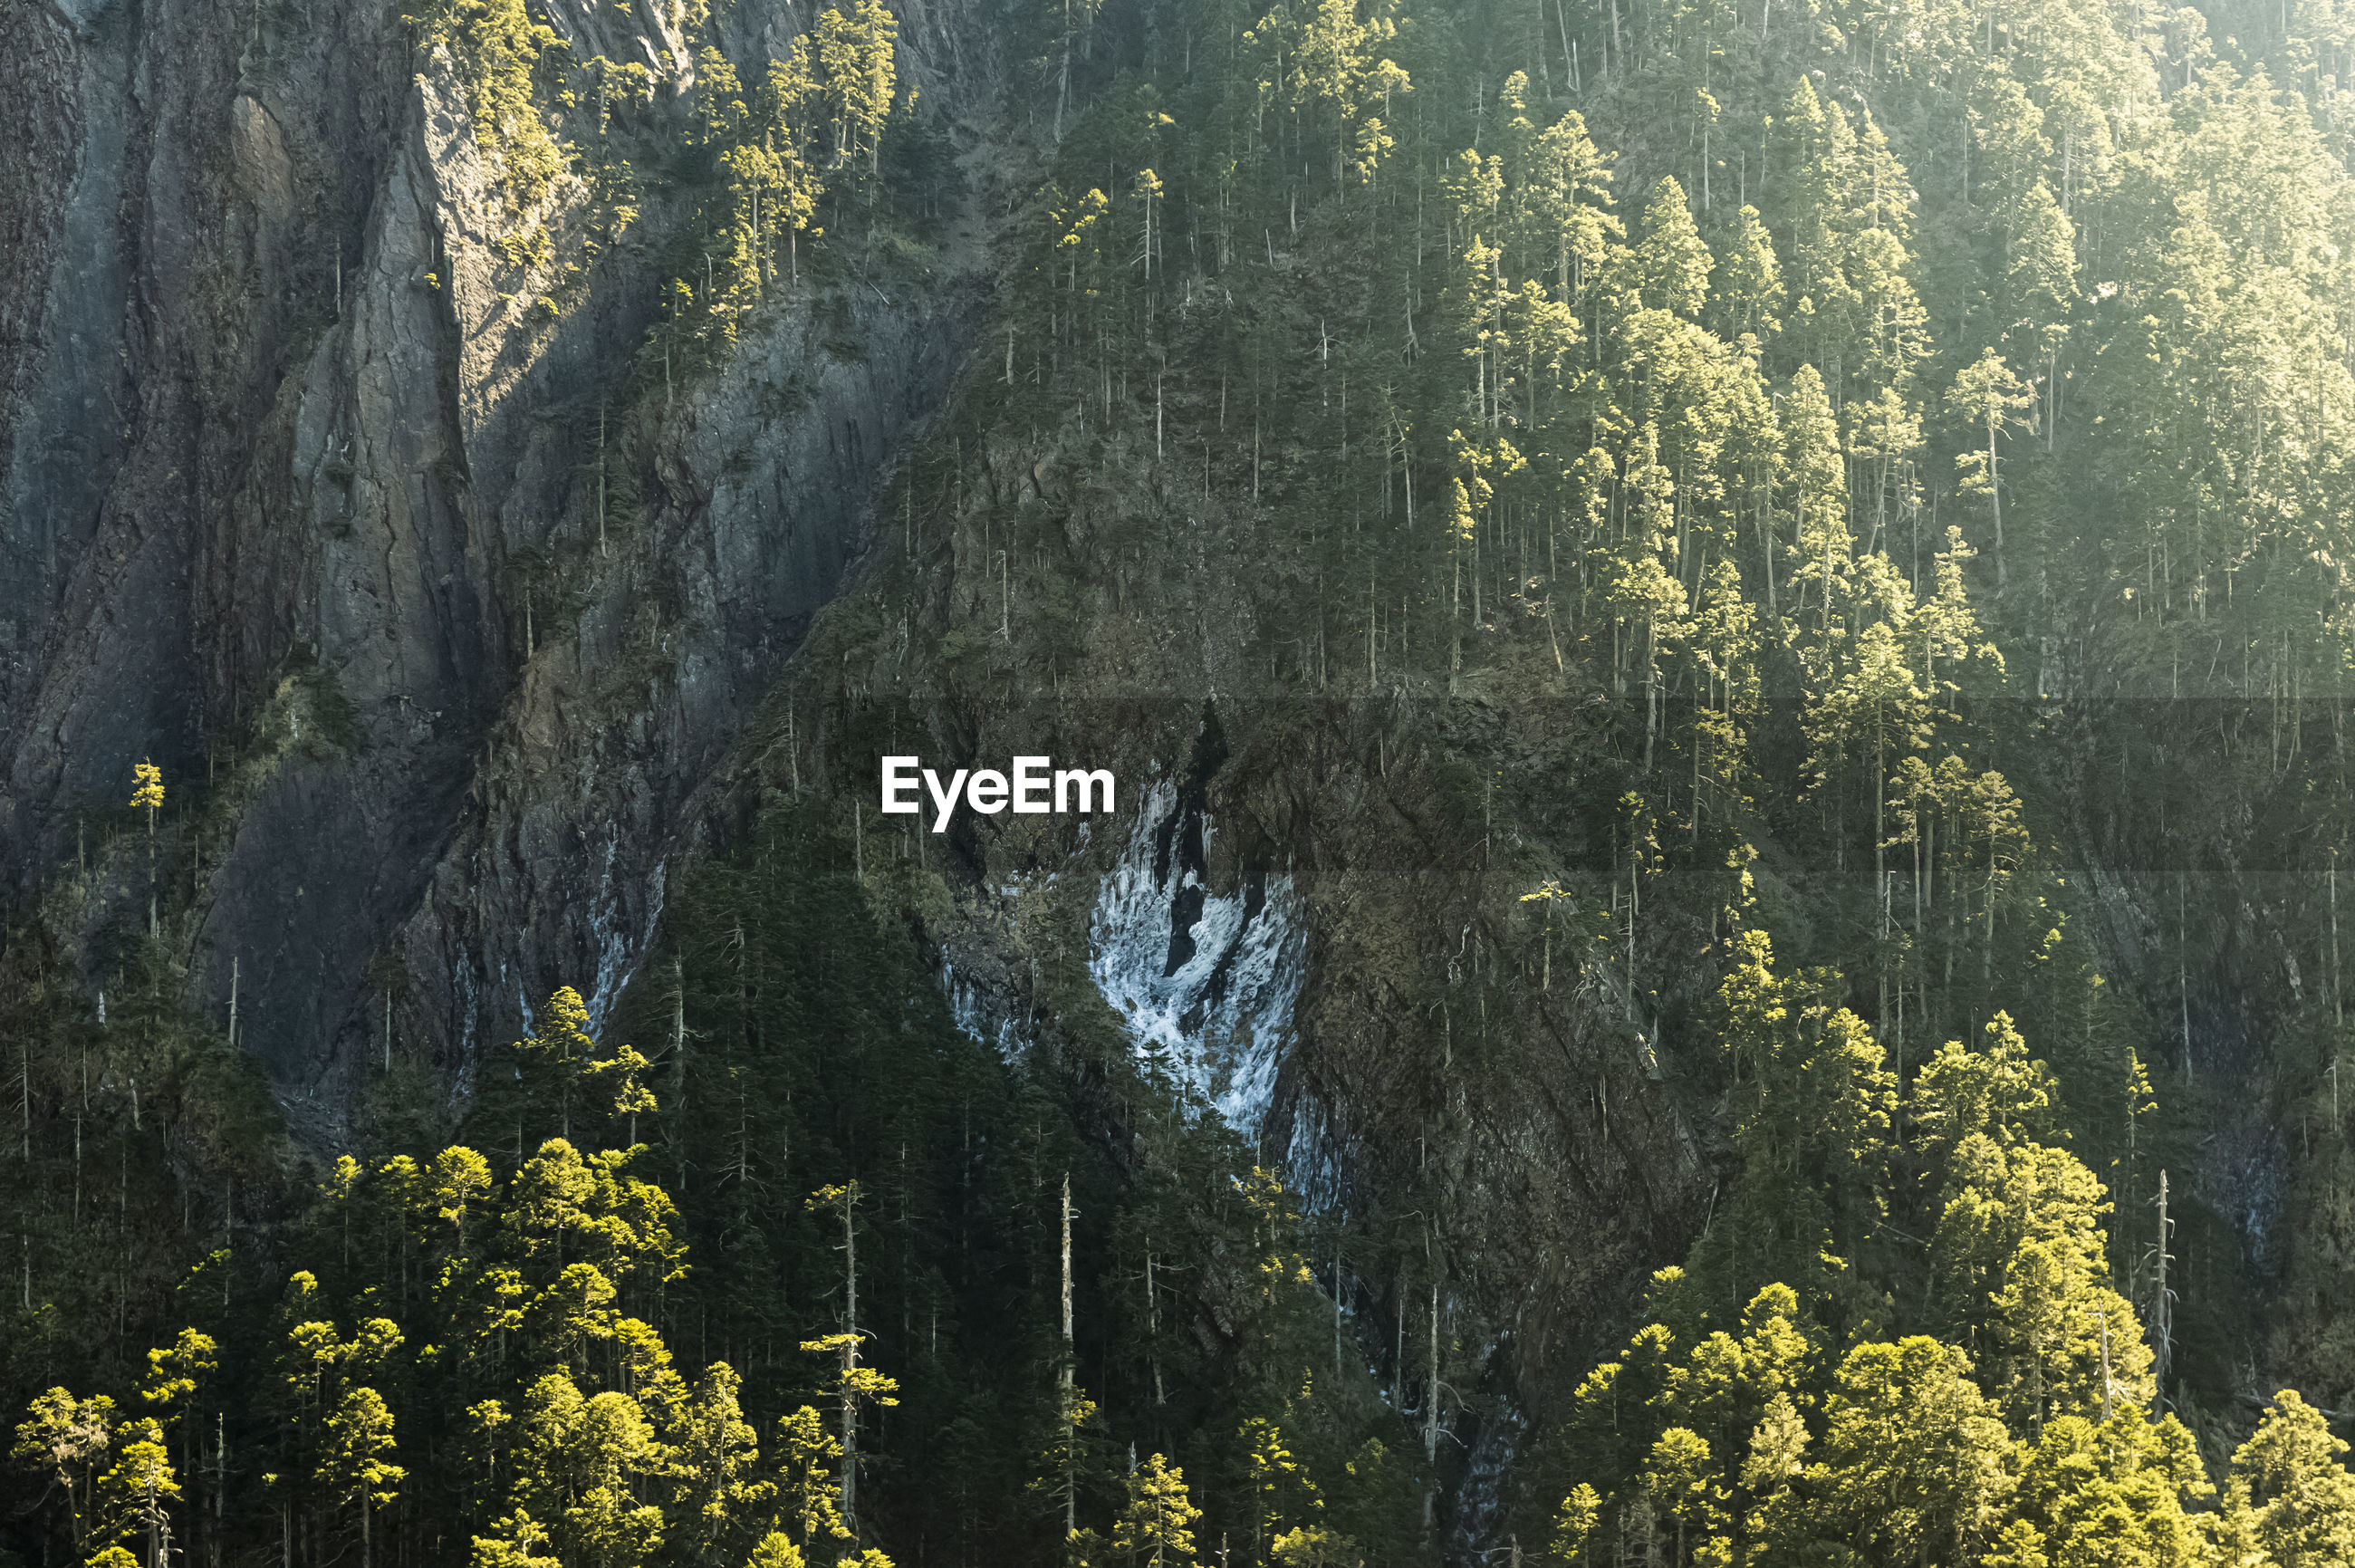 PANORAMIC VIEW OF TREES AND PLANTS IN SUNLIGHT